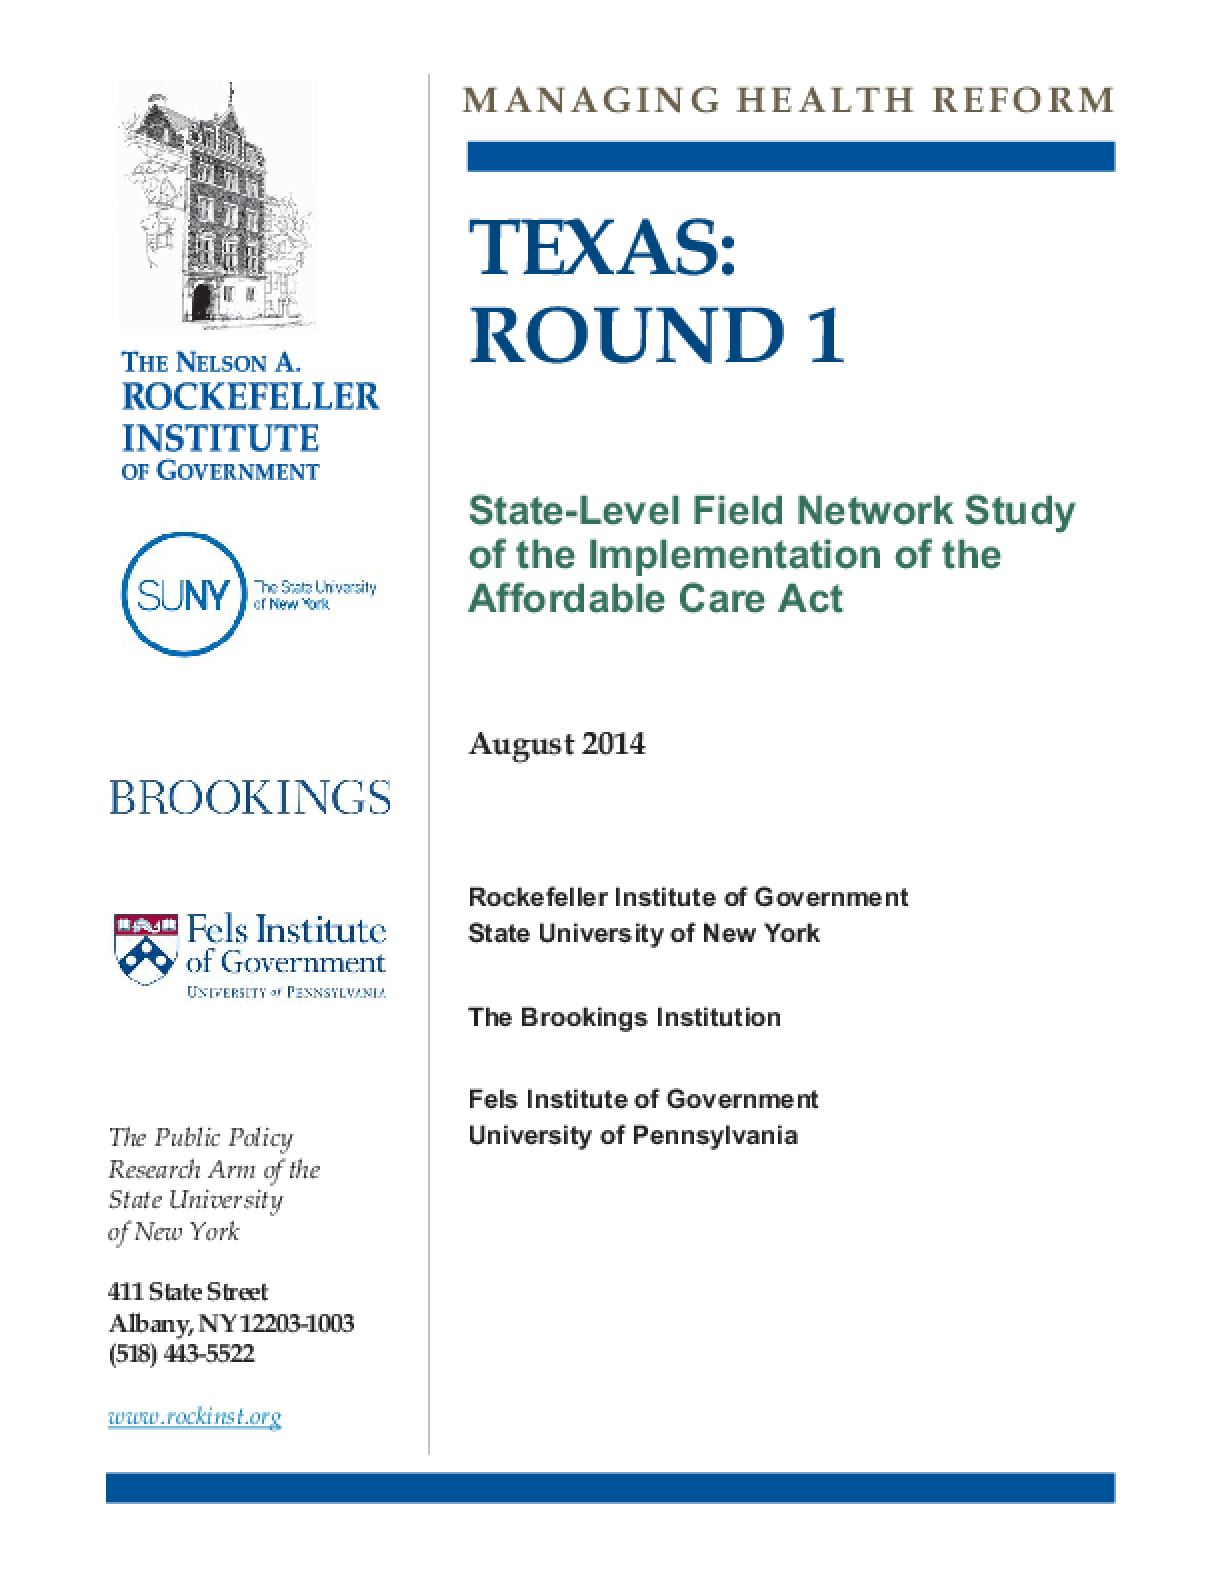 Texas: Round 1 - State-Level Field network Study of the Implementation of the Affordable Care Act